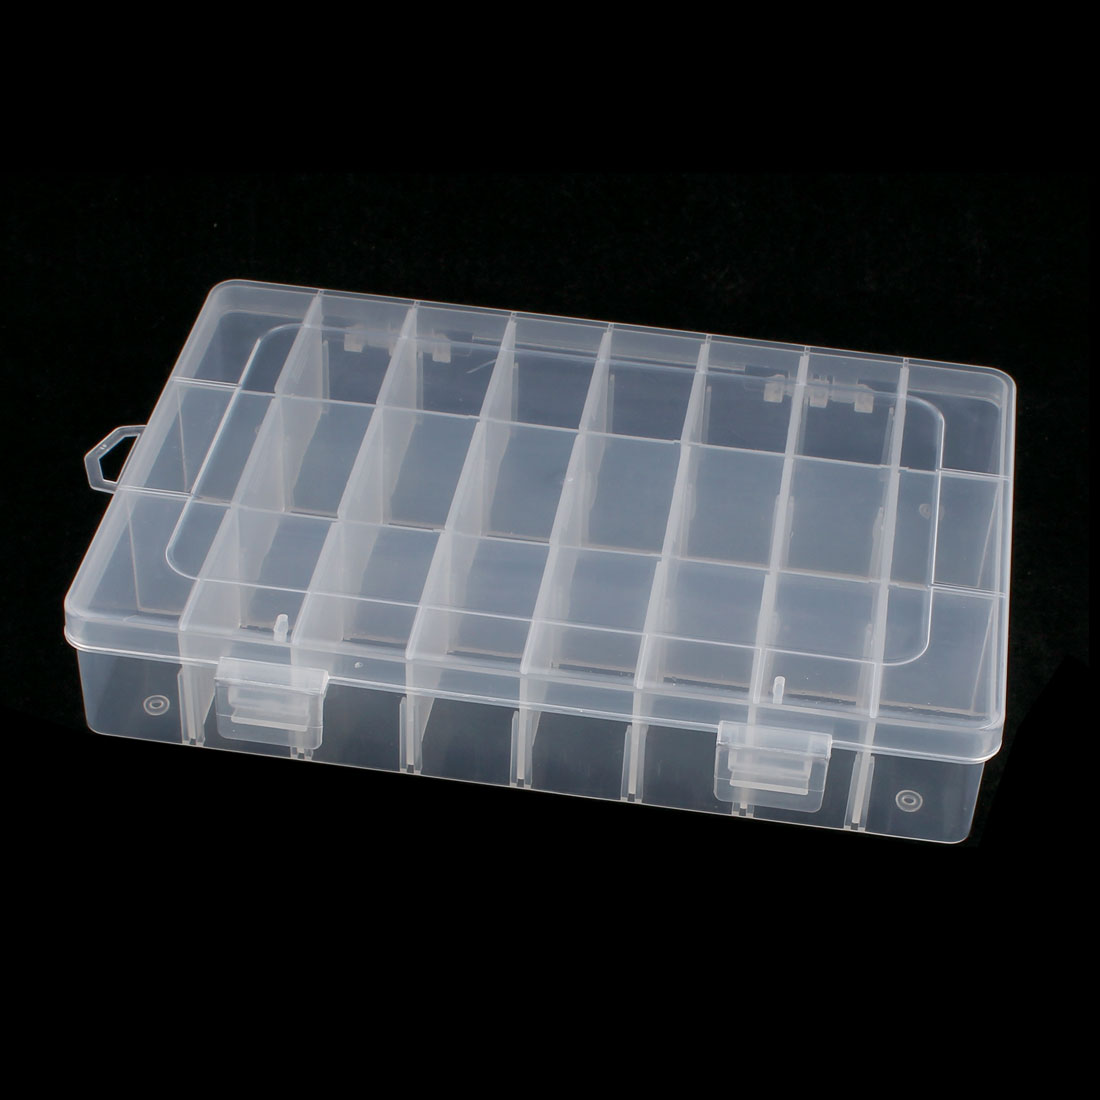 Electronic Components Tool Rectangle Plastic Detachable 24 Slots Storage Case Box Holder Organizer 195mmx130mm